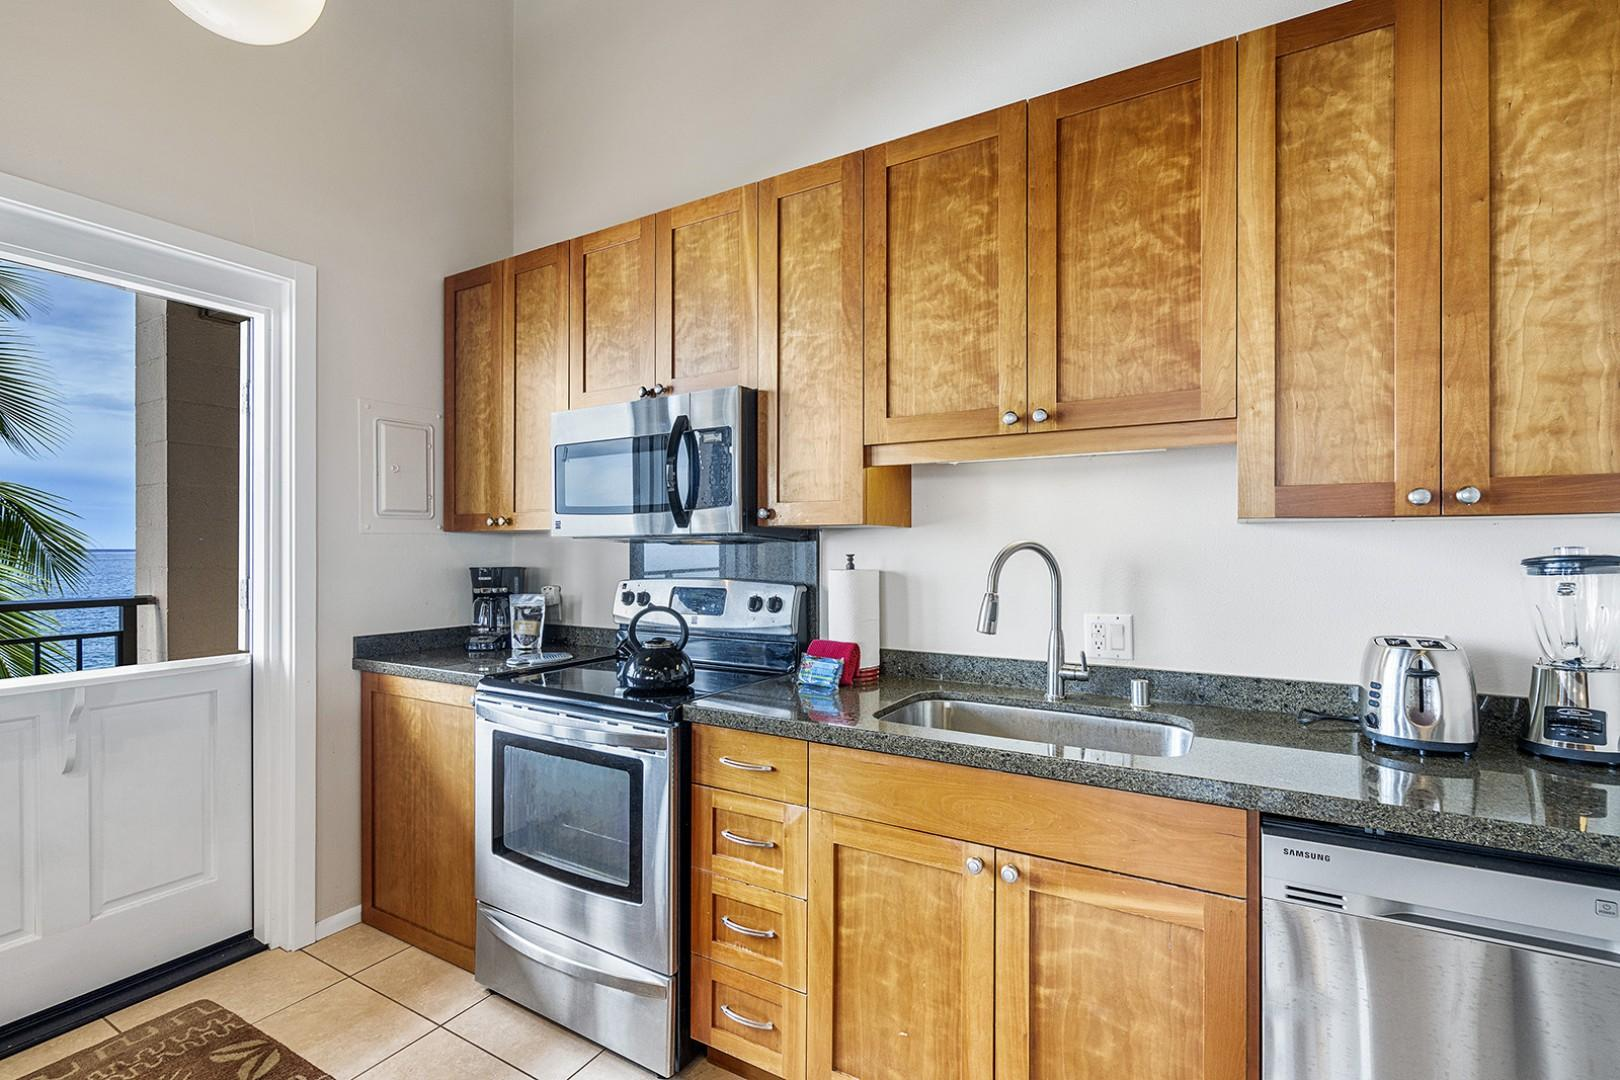 Fully equipped kitchen with all the essentials you could need!